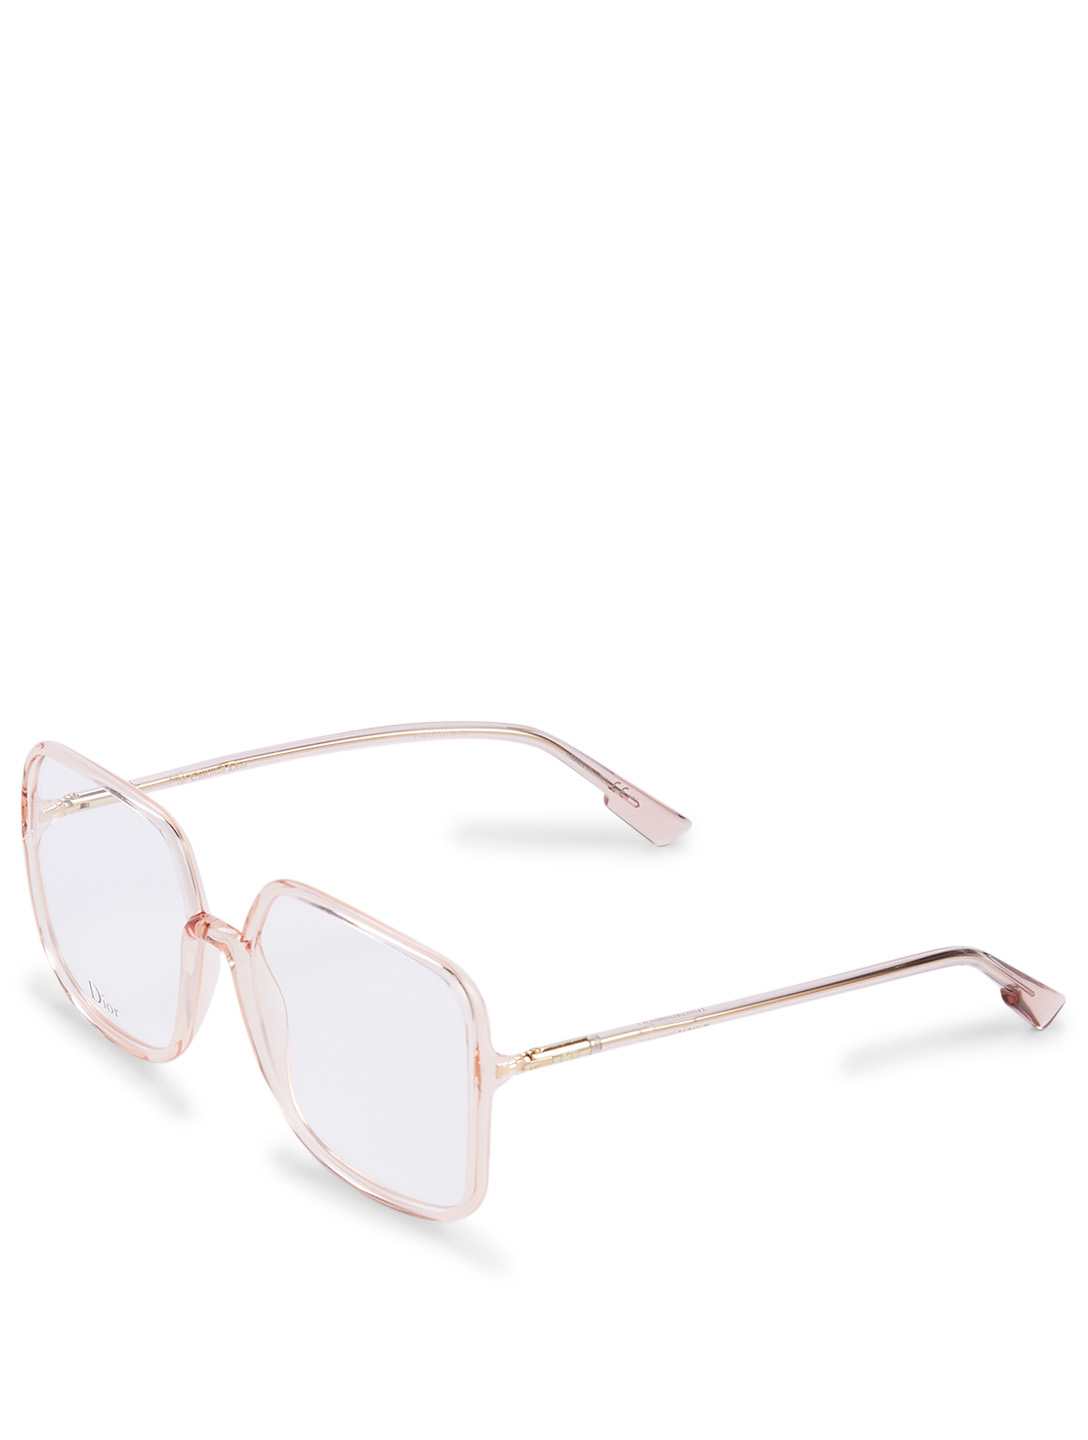 DIOR SoStellaireO1 Square Optical Glasses Women's Pink